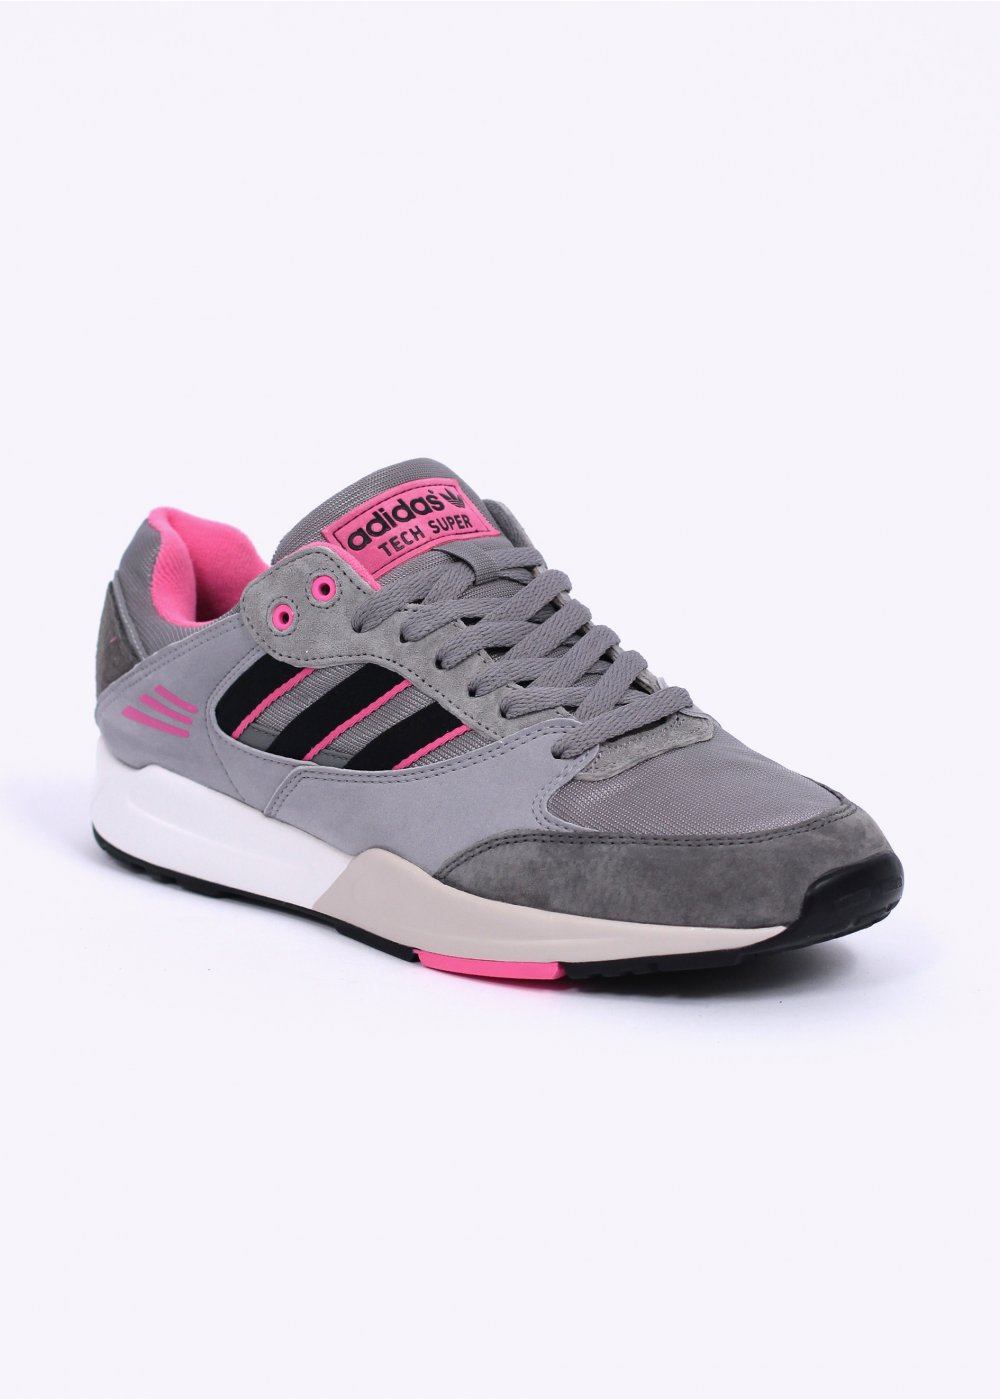 Adidas Tech Super Trainers